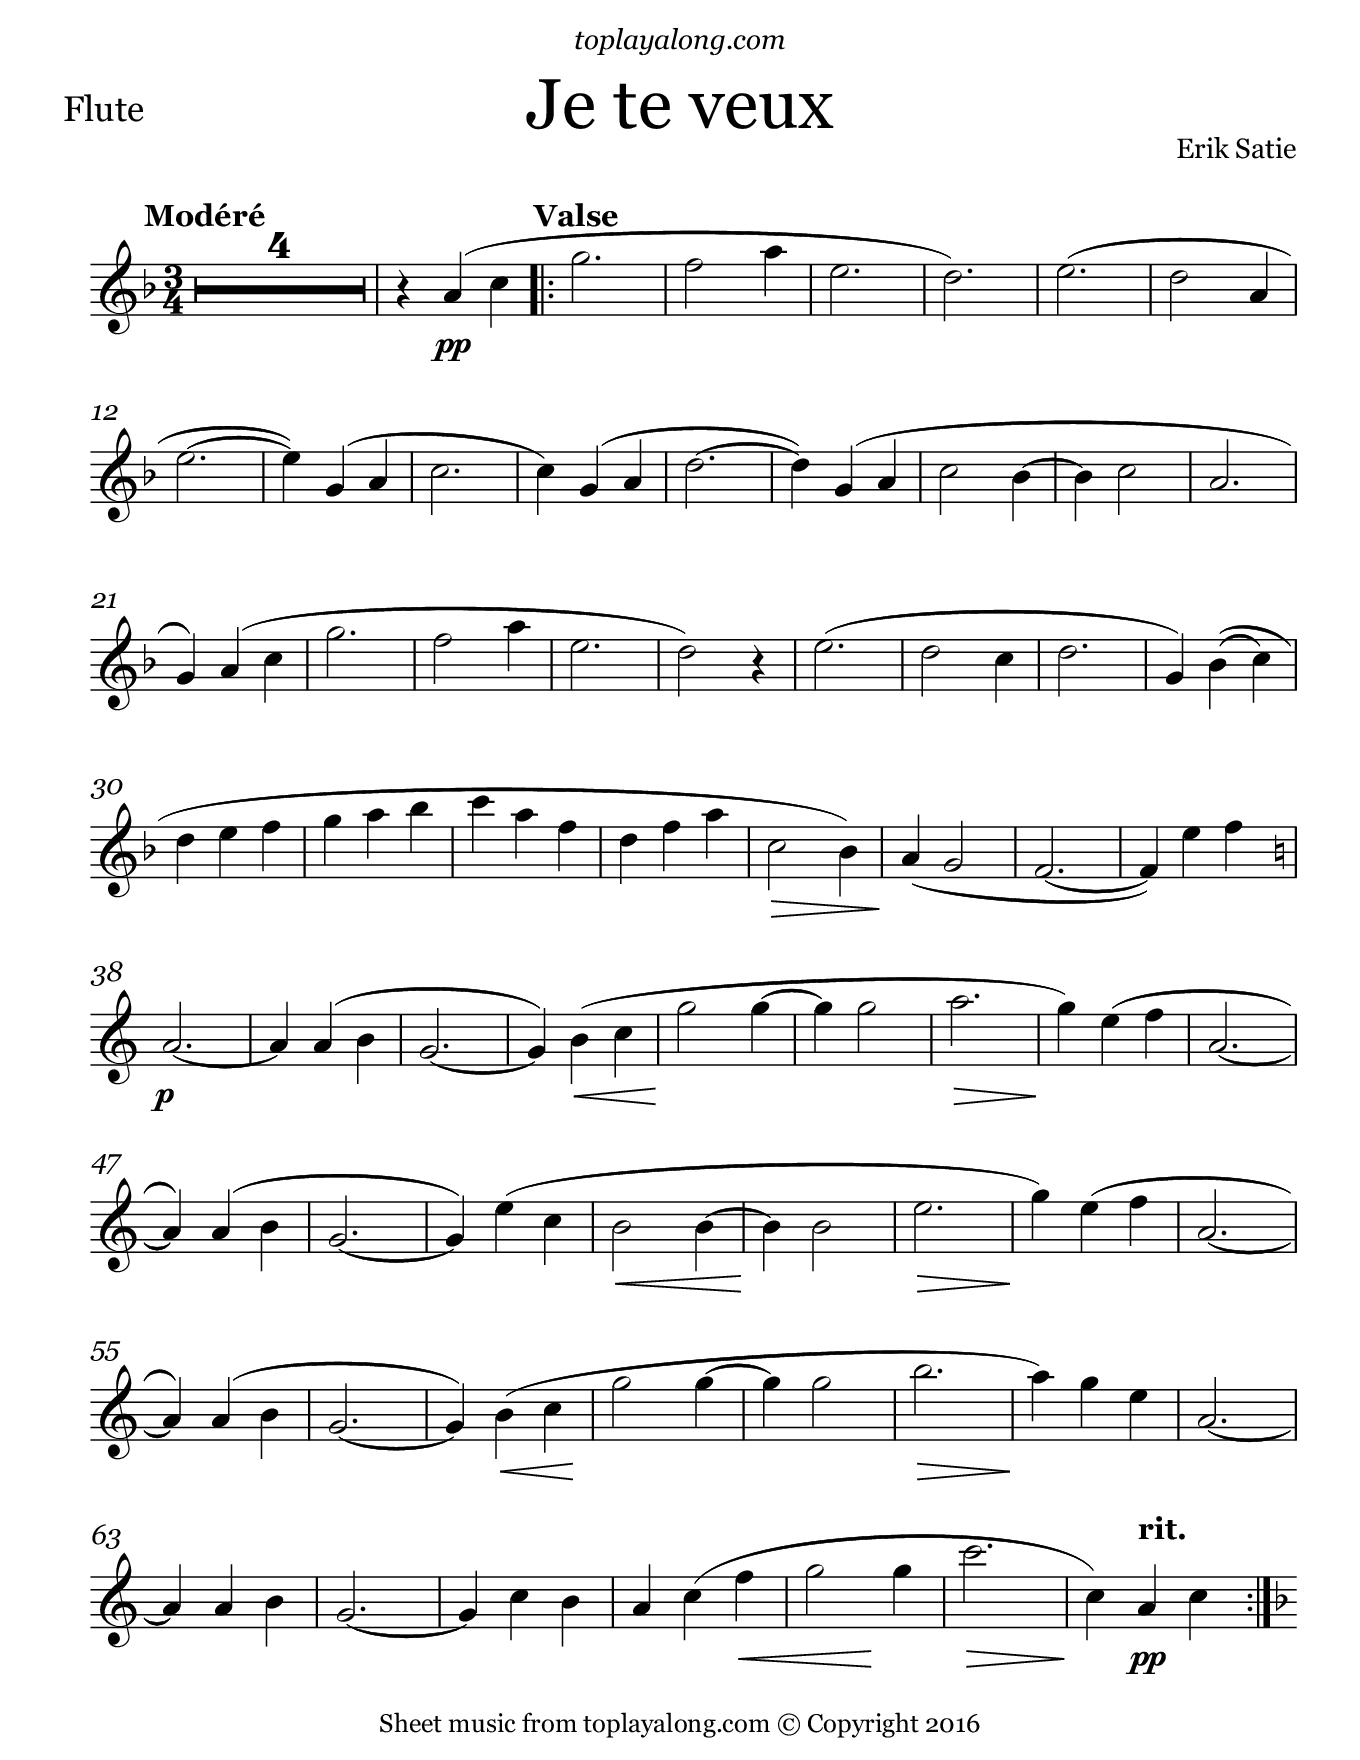 Je te veux by Satie. Sheet music for Flute, page 1.